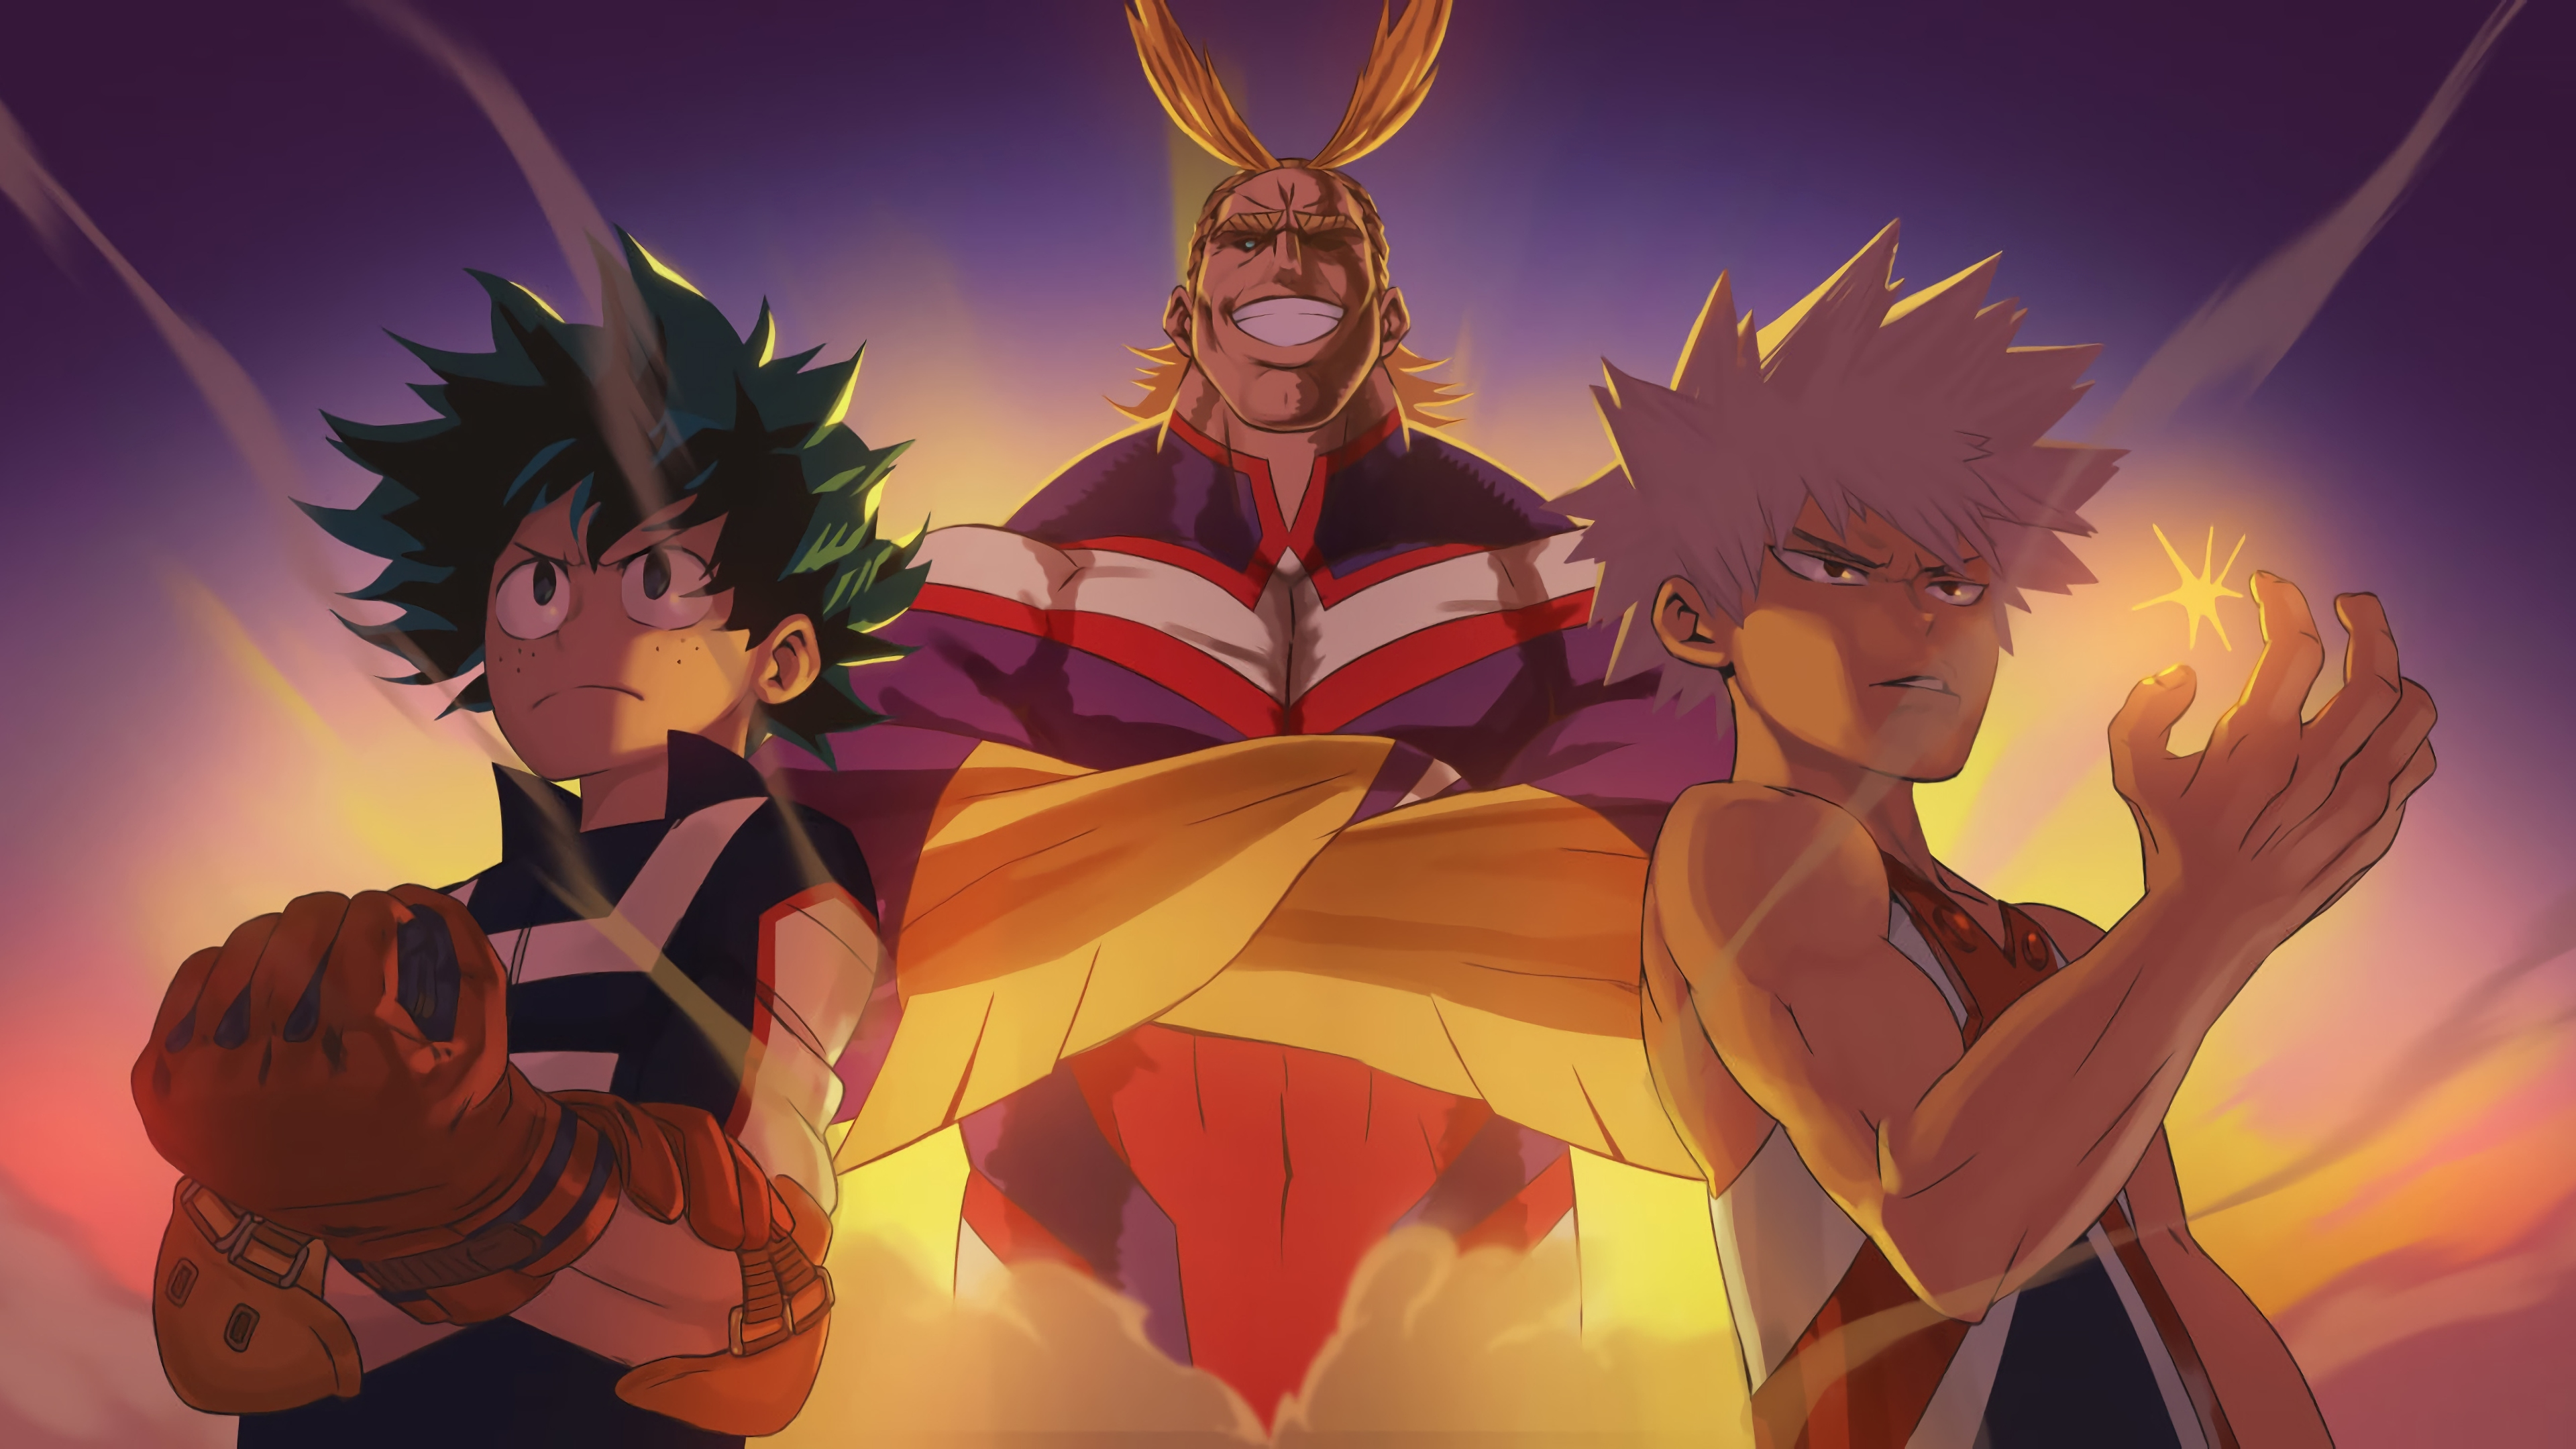 Download wallpapers from anime my hero academia for monitor with resolution 1024x768 and tags on page: Katsuki Bakugo Wallpaper, HD, 4K, 8K   My Hero Academia ...